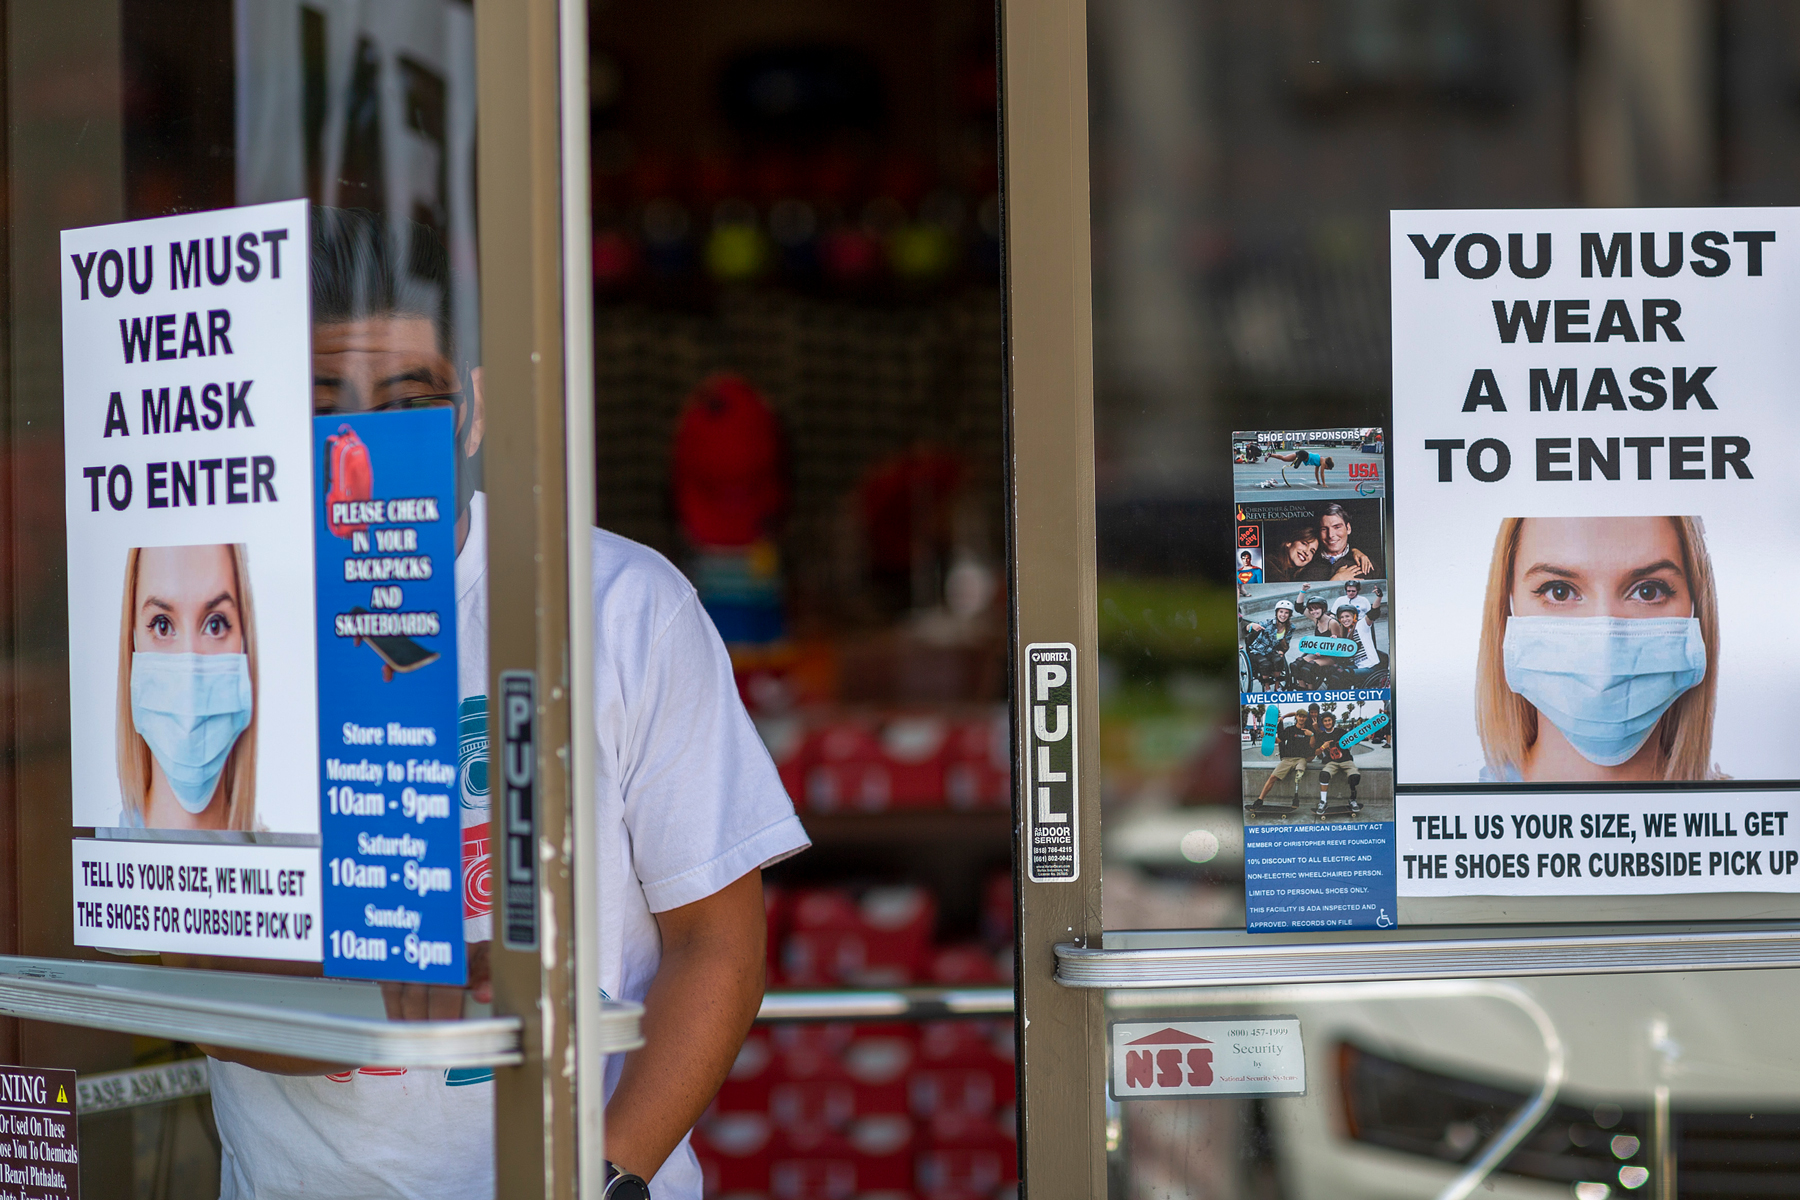 A man exits a Shoe City store where masks are required for entry as Los Angeles County retail businesses reopen while the COVID-19